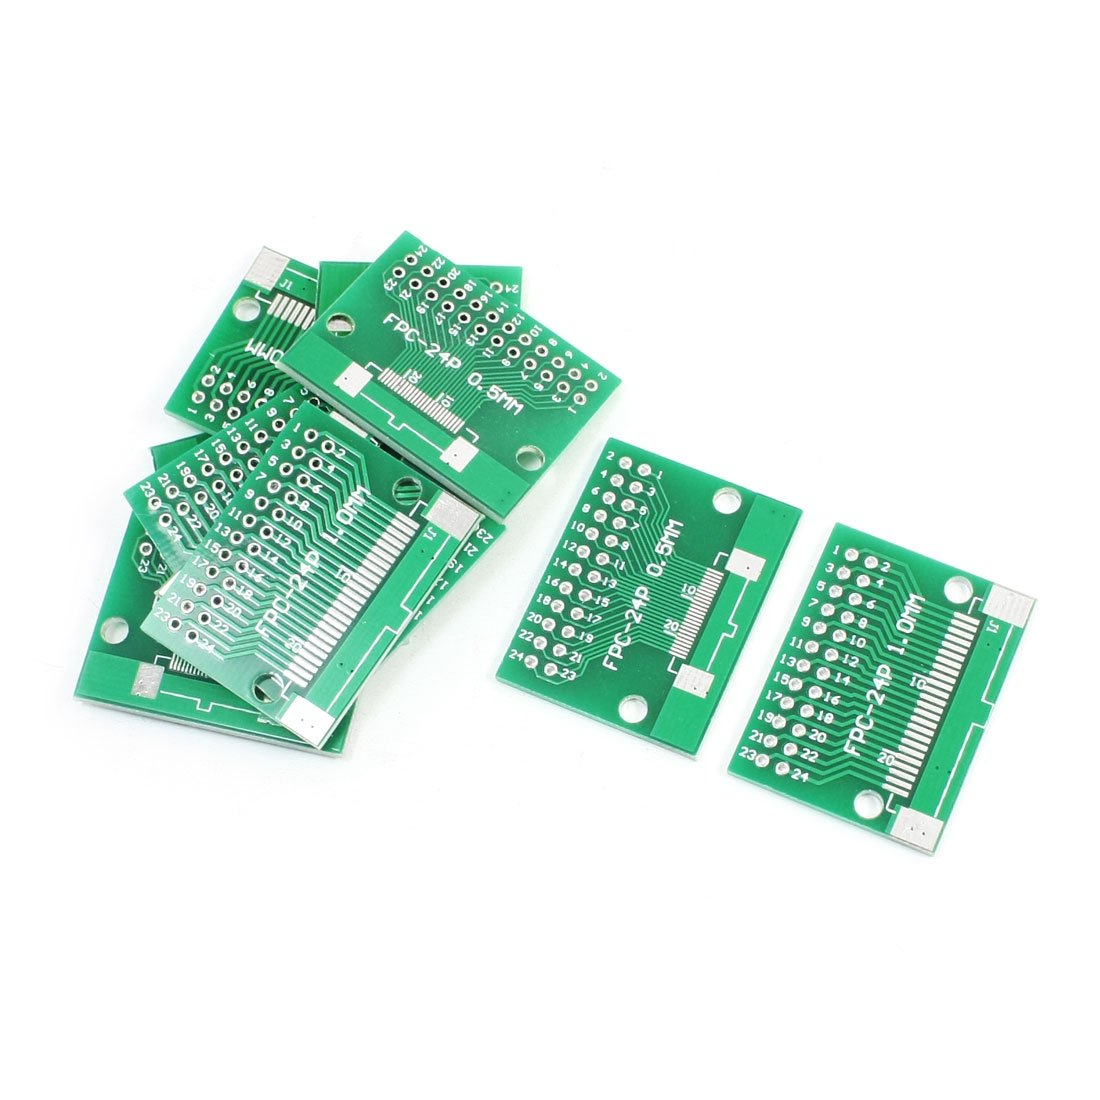 10 x FPC-24P FFC-24P to DIP24 Double Sides PCB Board Adapter Converter